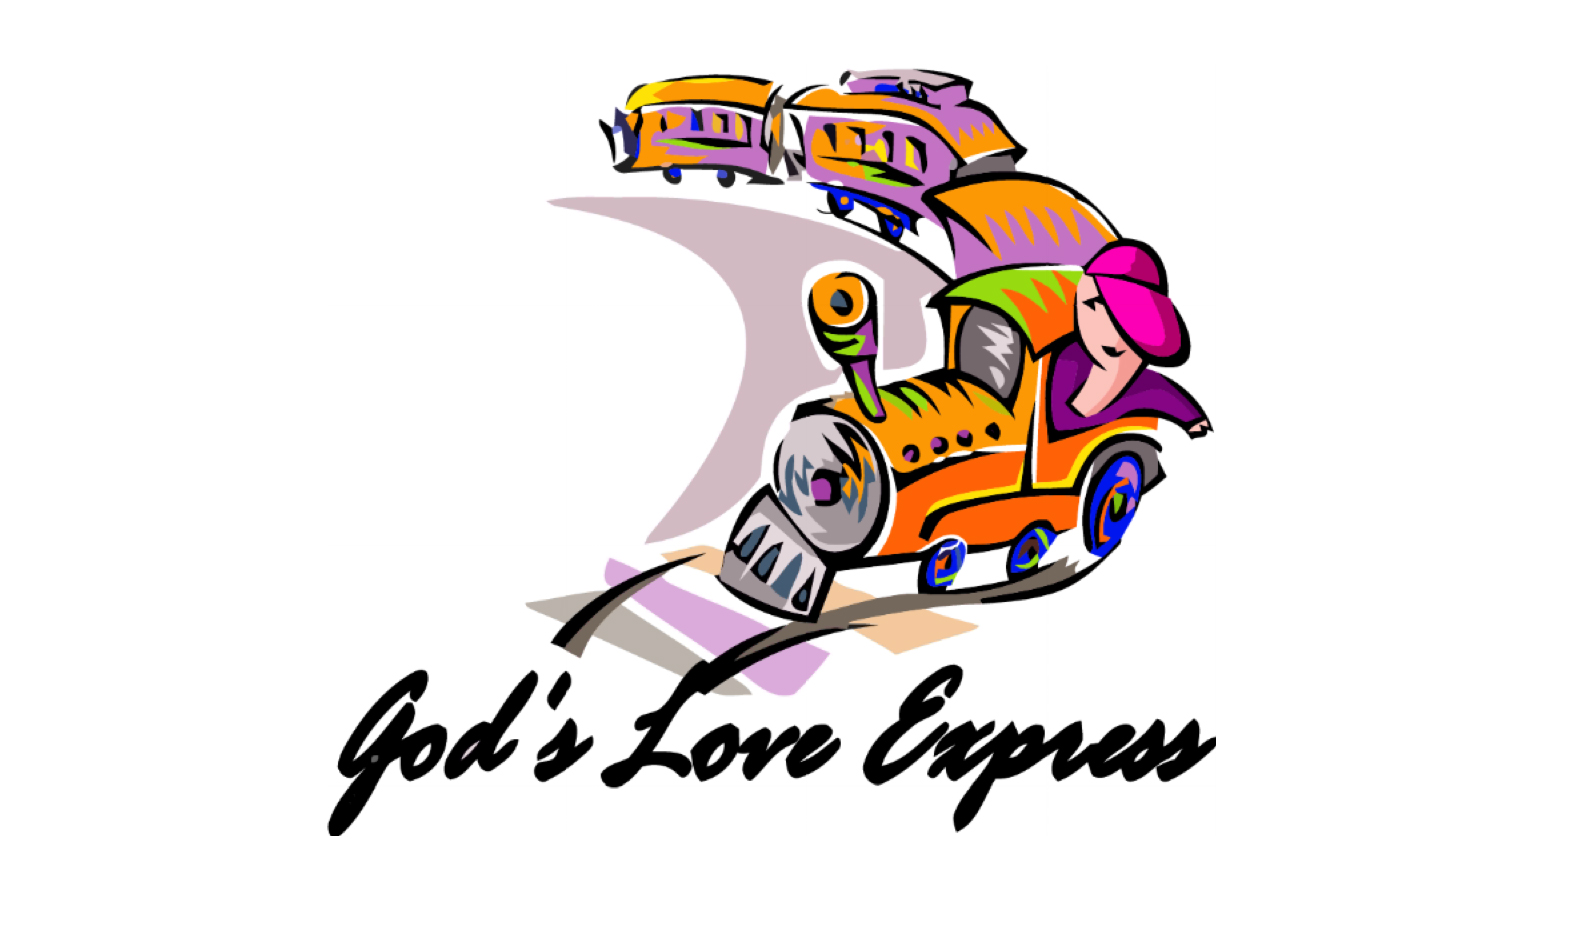 God s love express   logo